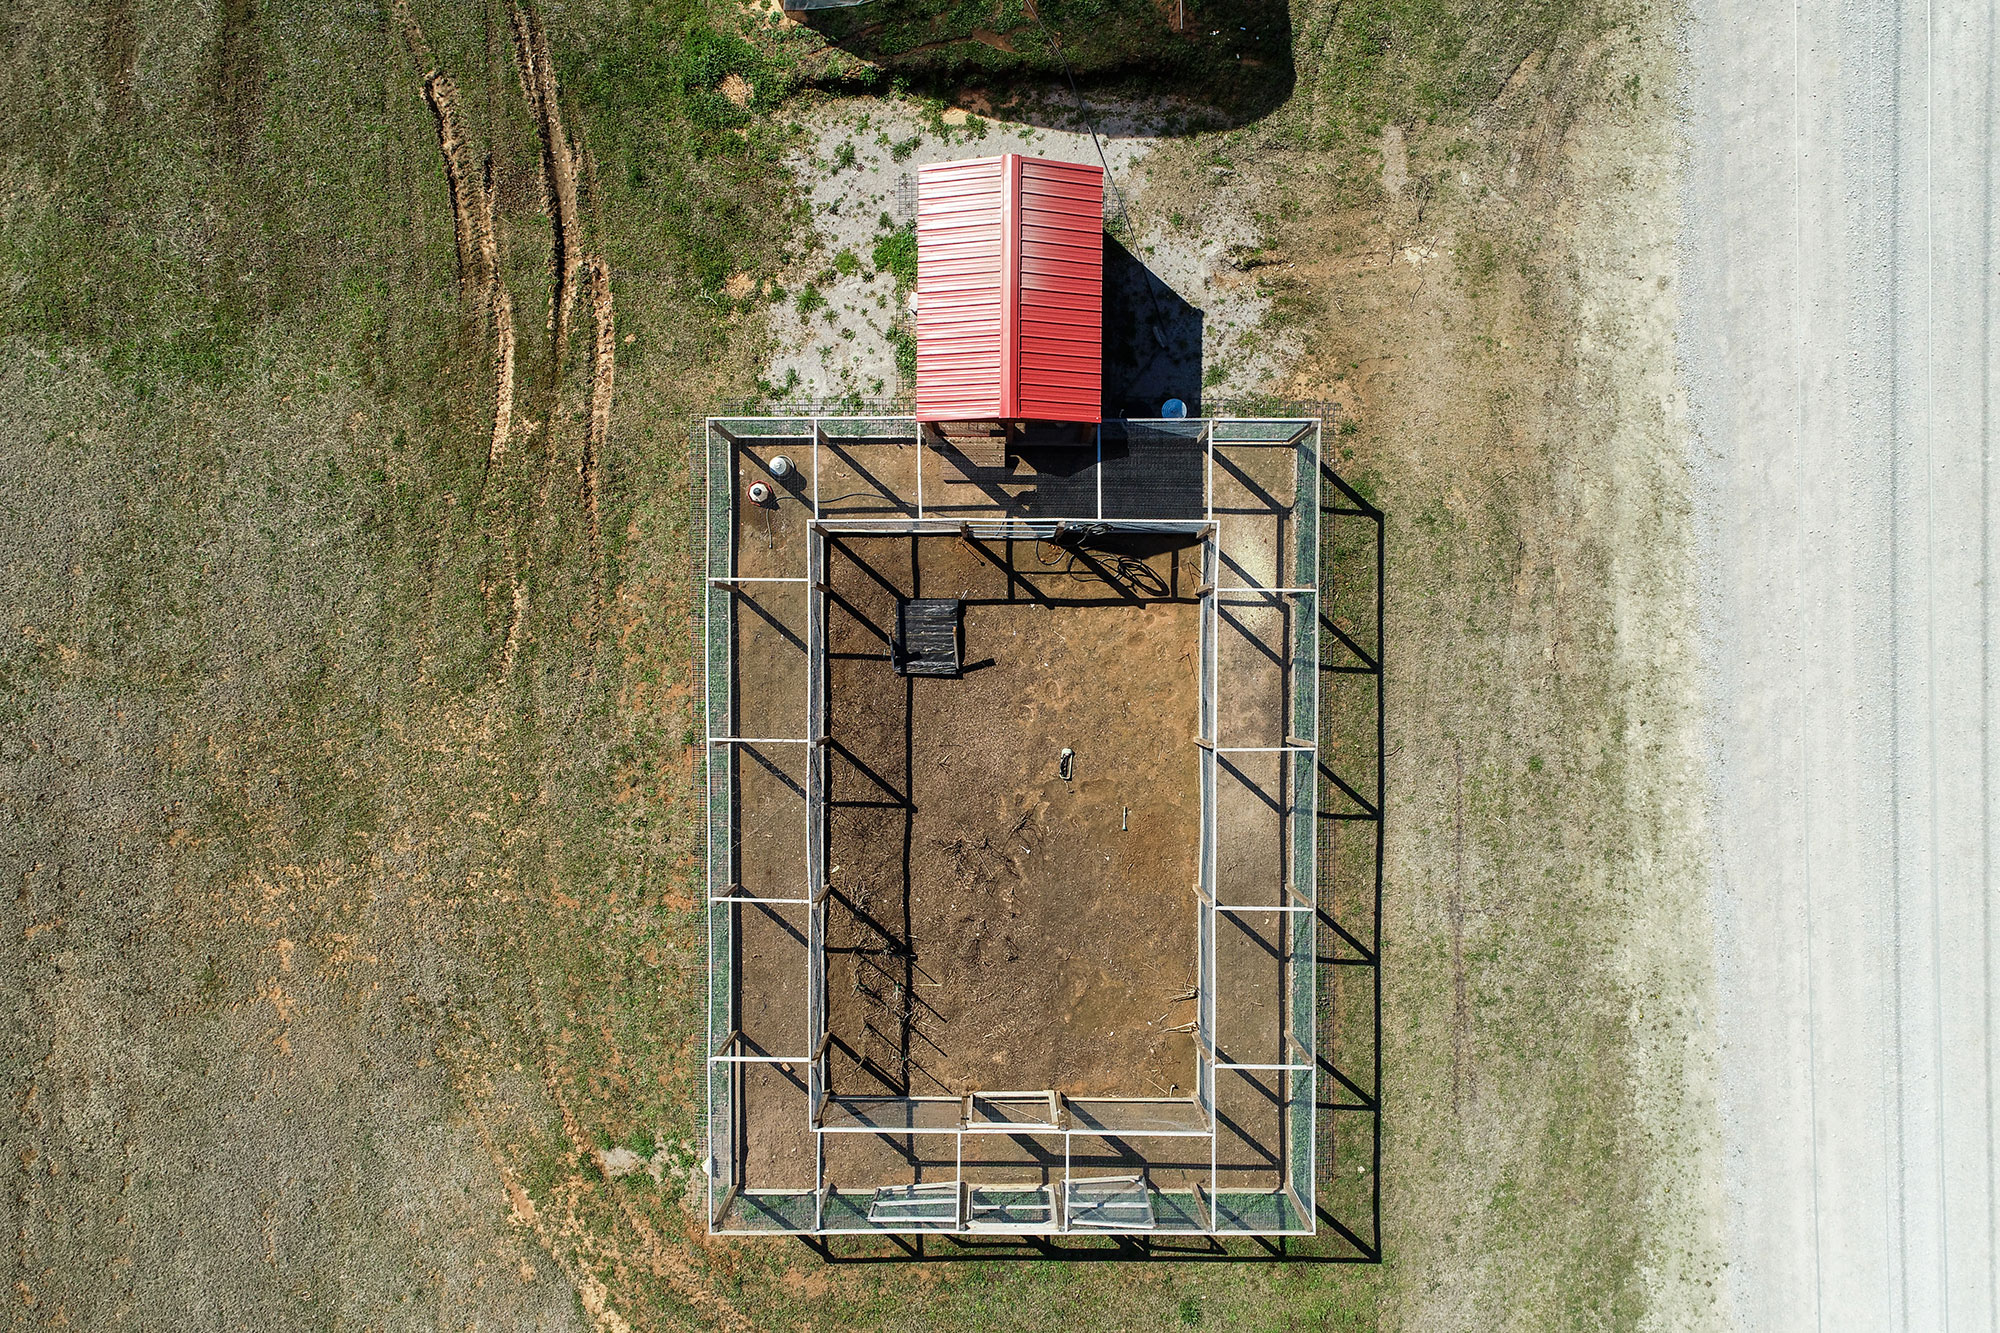 Chicken Moat viewed from overhead